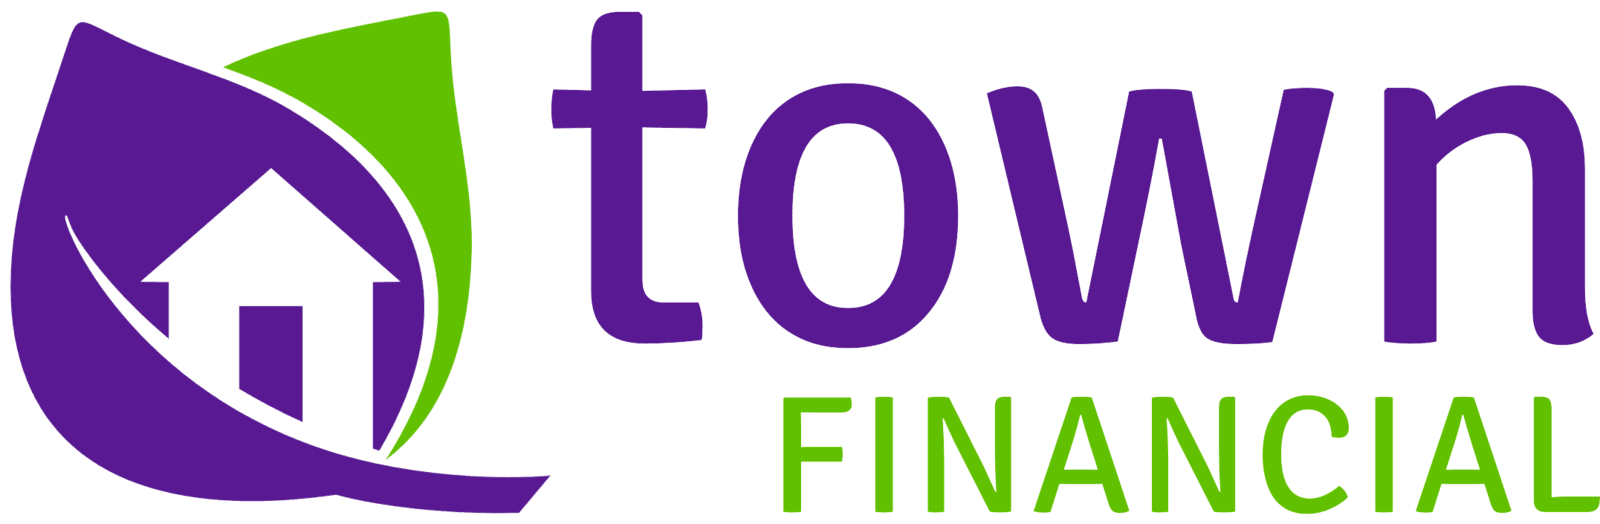 Town Financial | Mortgages, Life Insurance and Loans